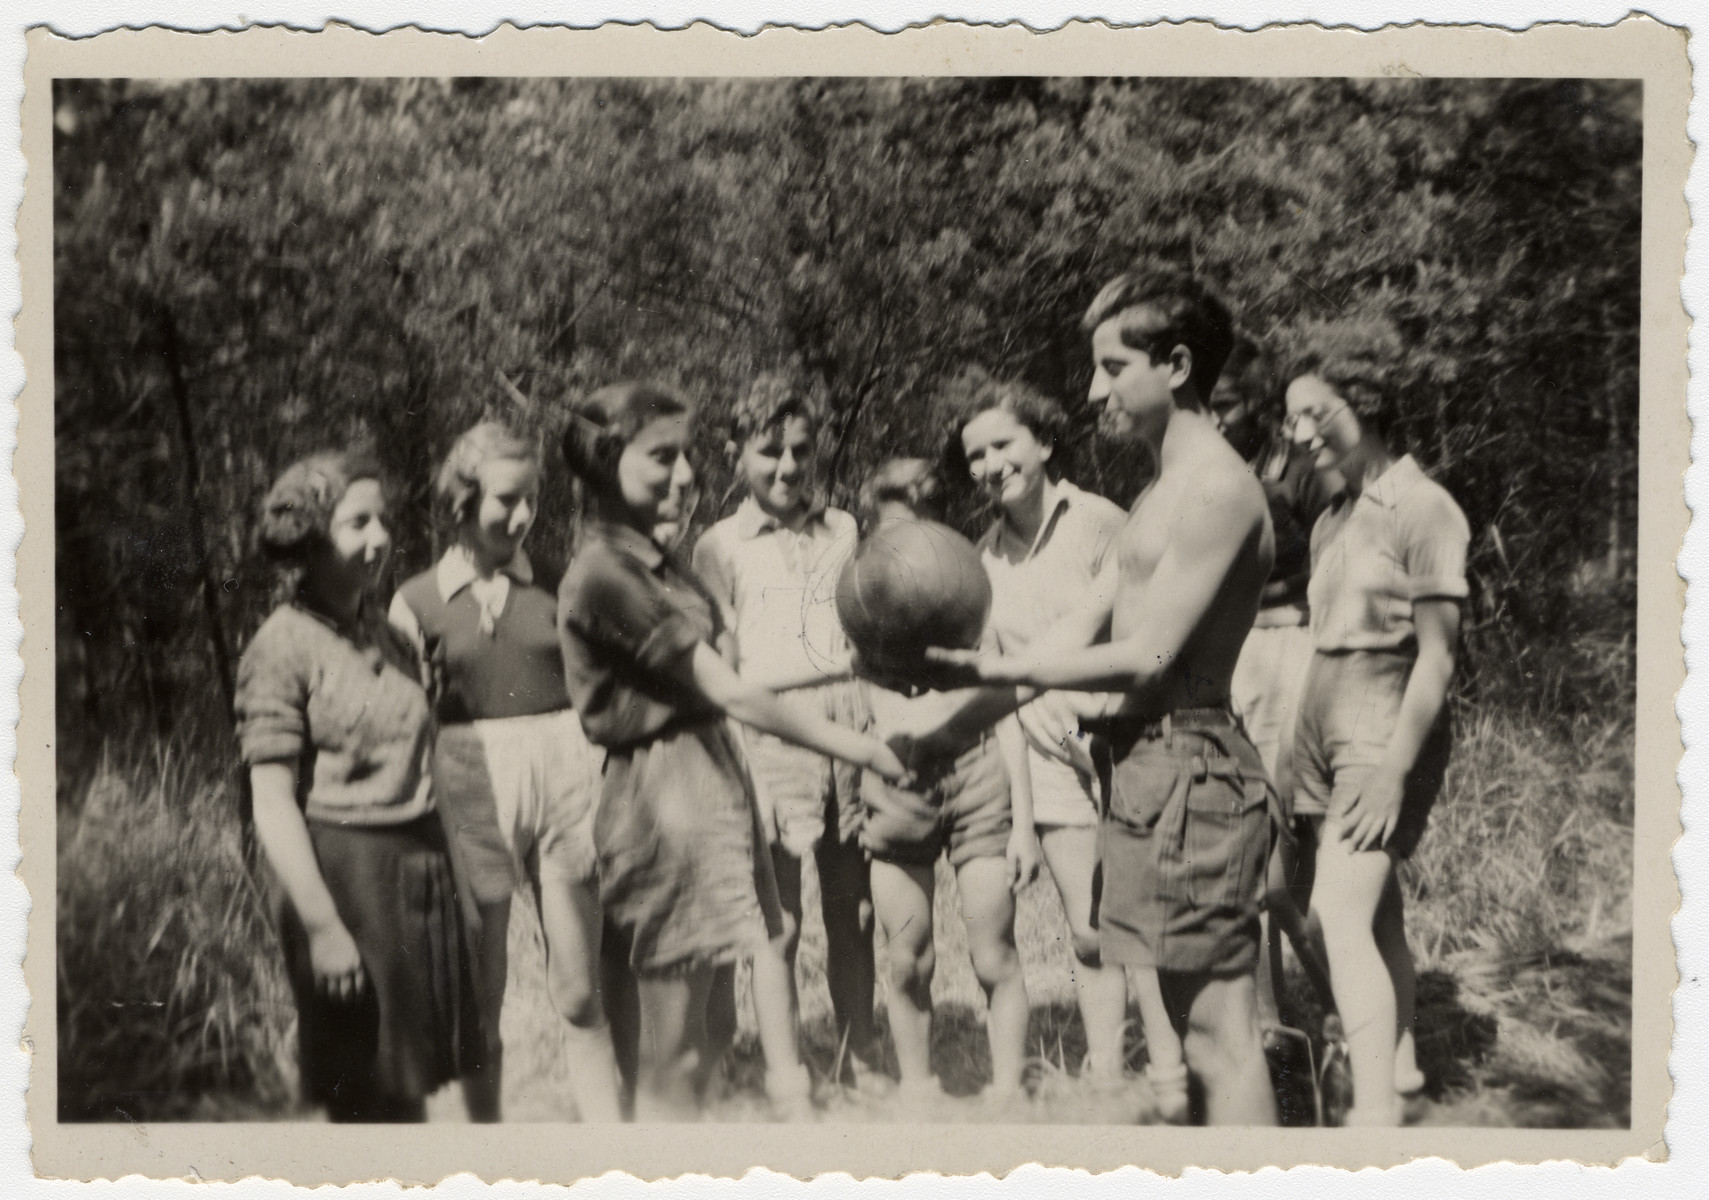 """Ruth Rappaport and a group friends from the Zionist youth group play a ball game.  The original caption in both Hebrew and German reads: """"On the route to freedon, ball sanctification."""""""